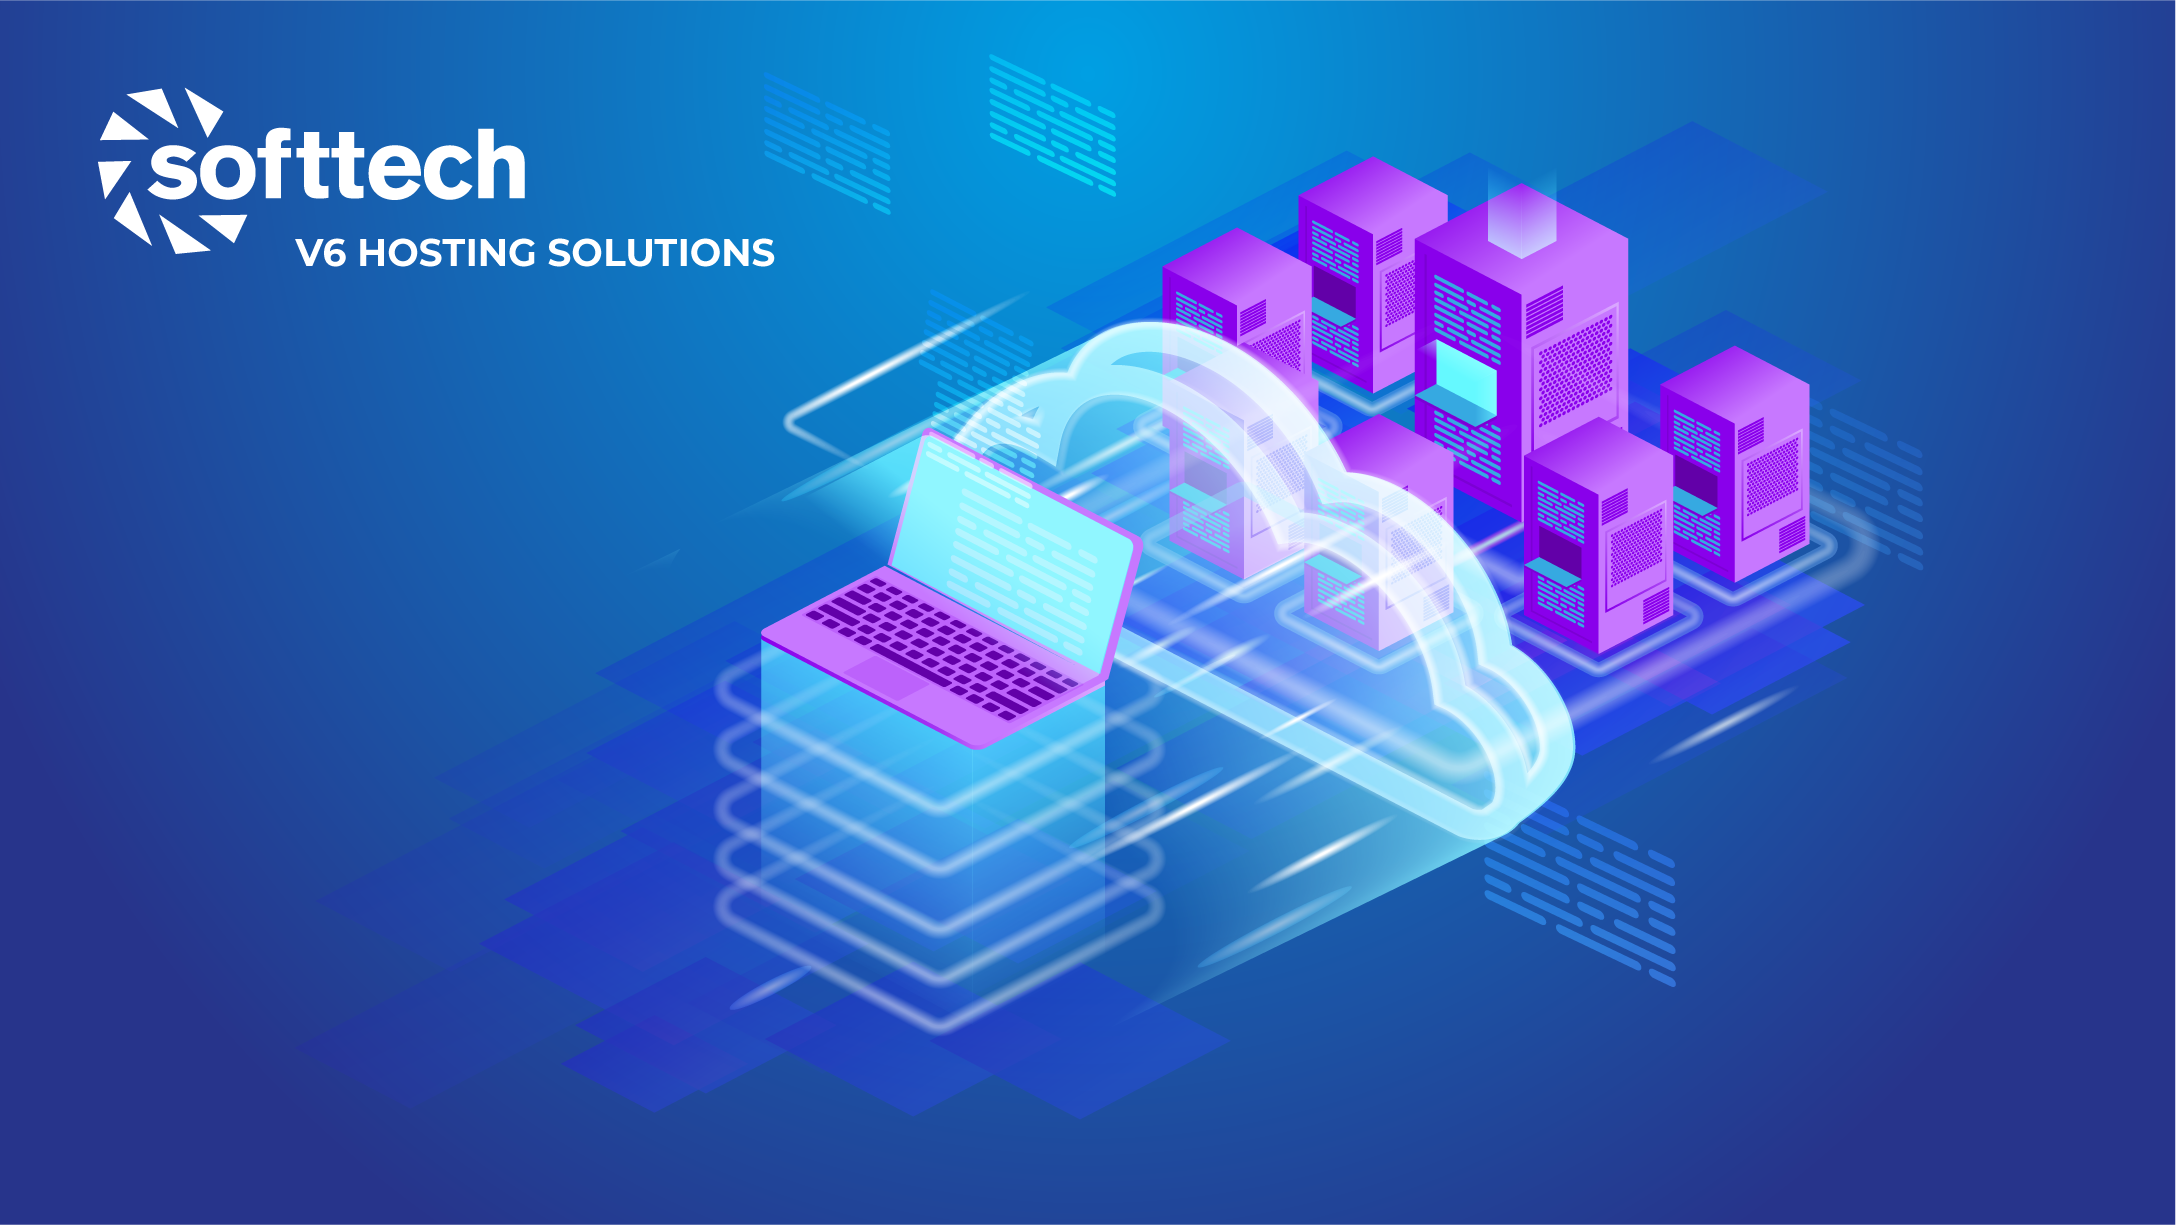 Soft Tech V6 Hosting Solutions